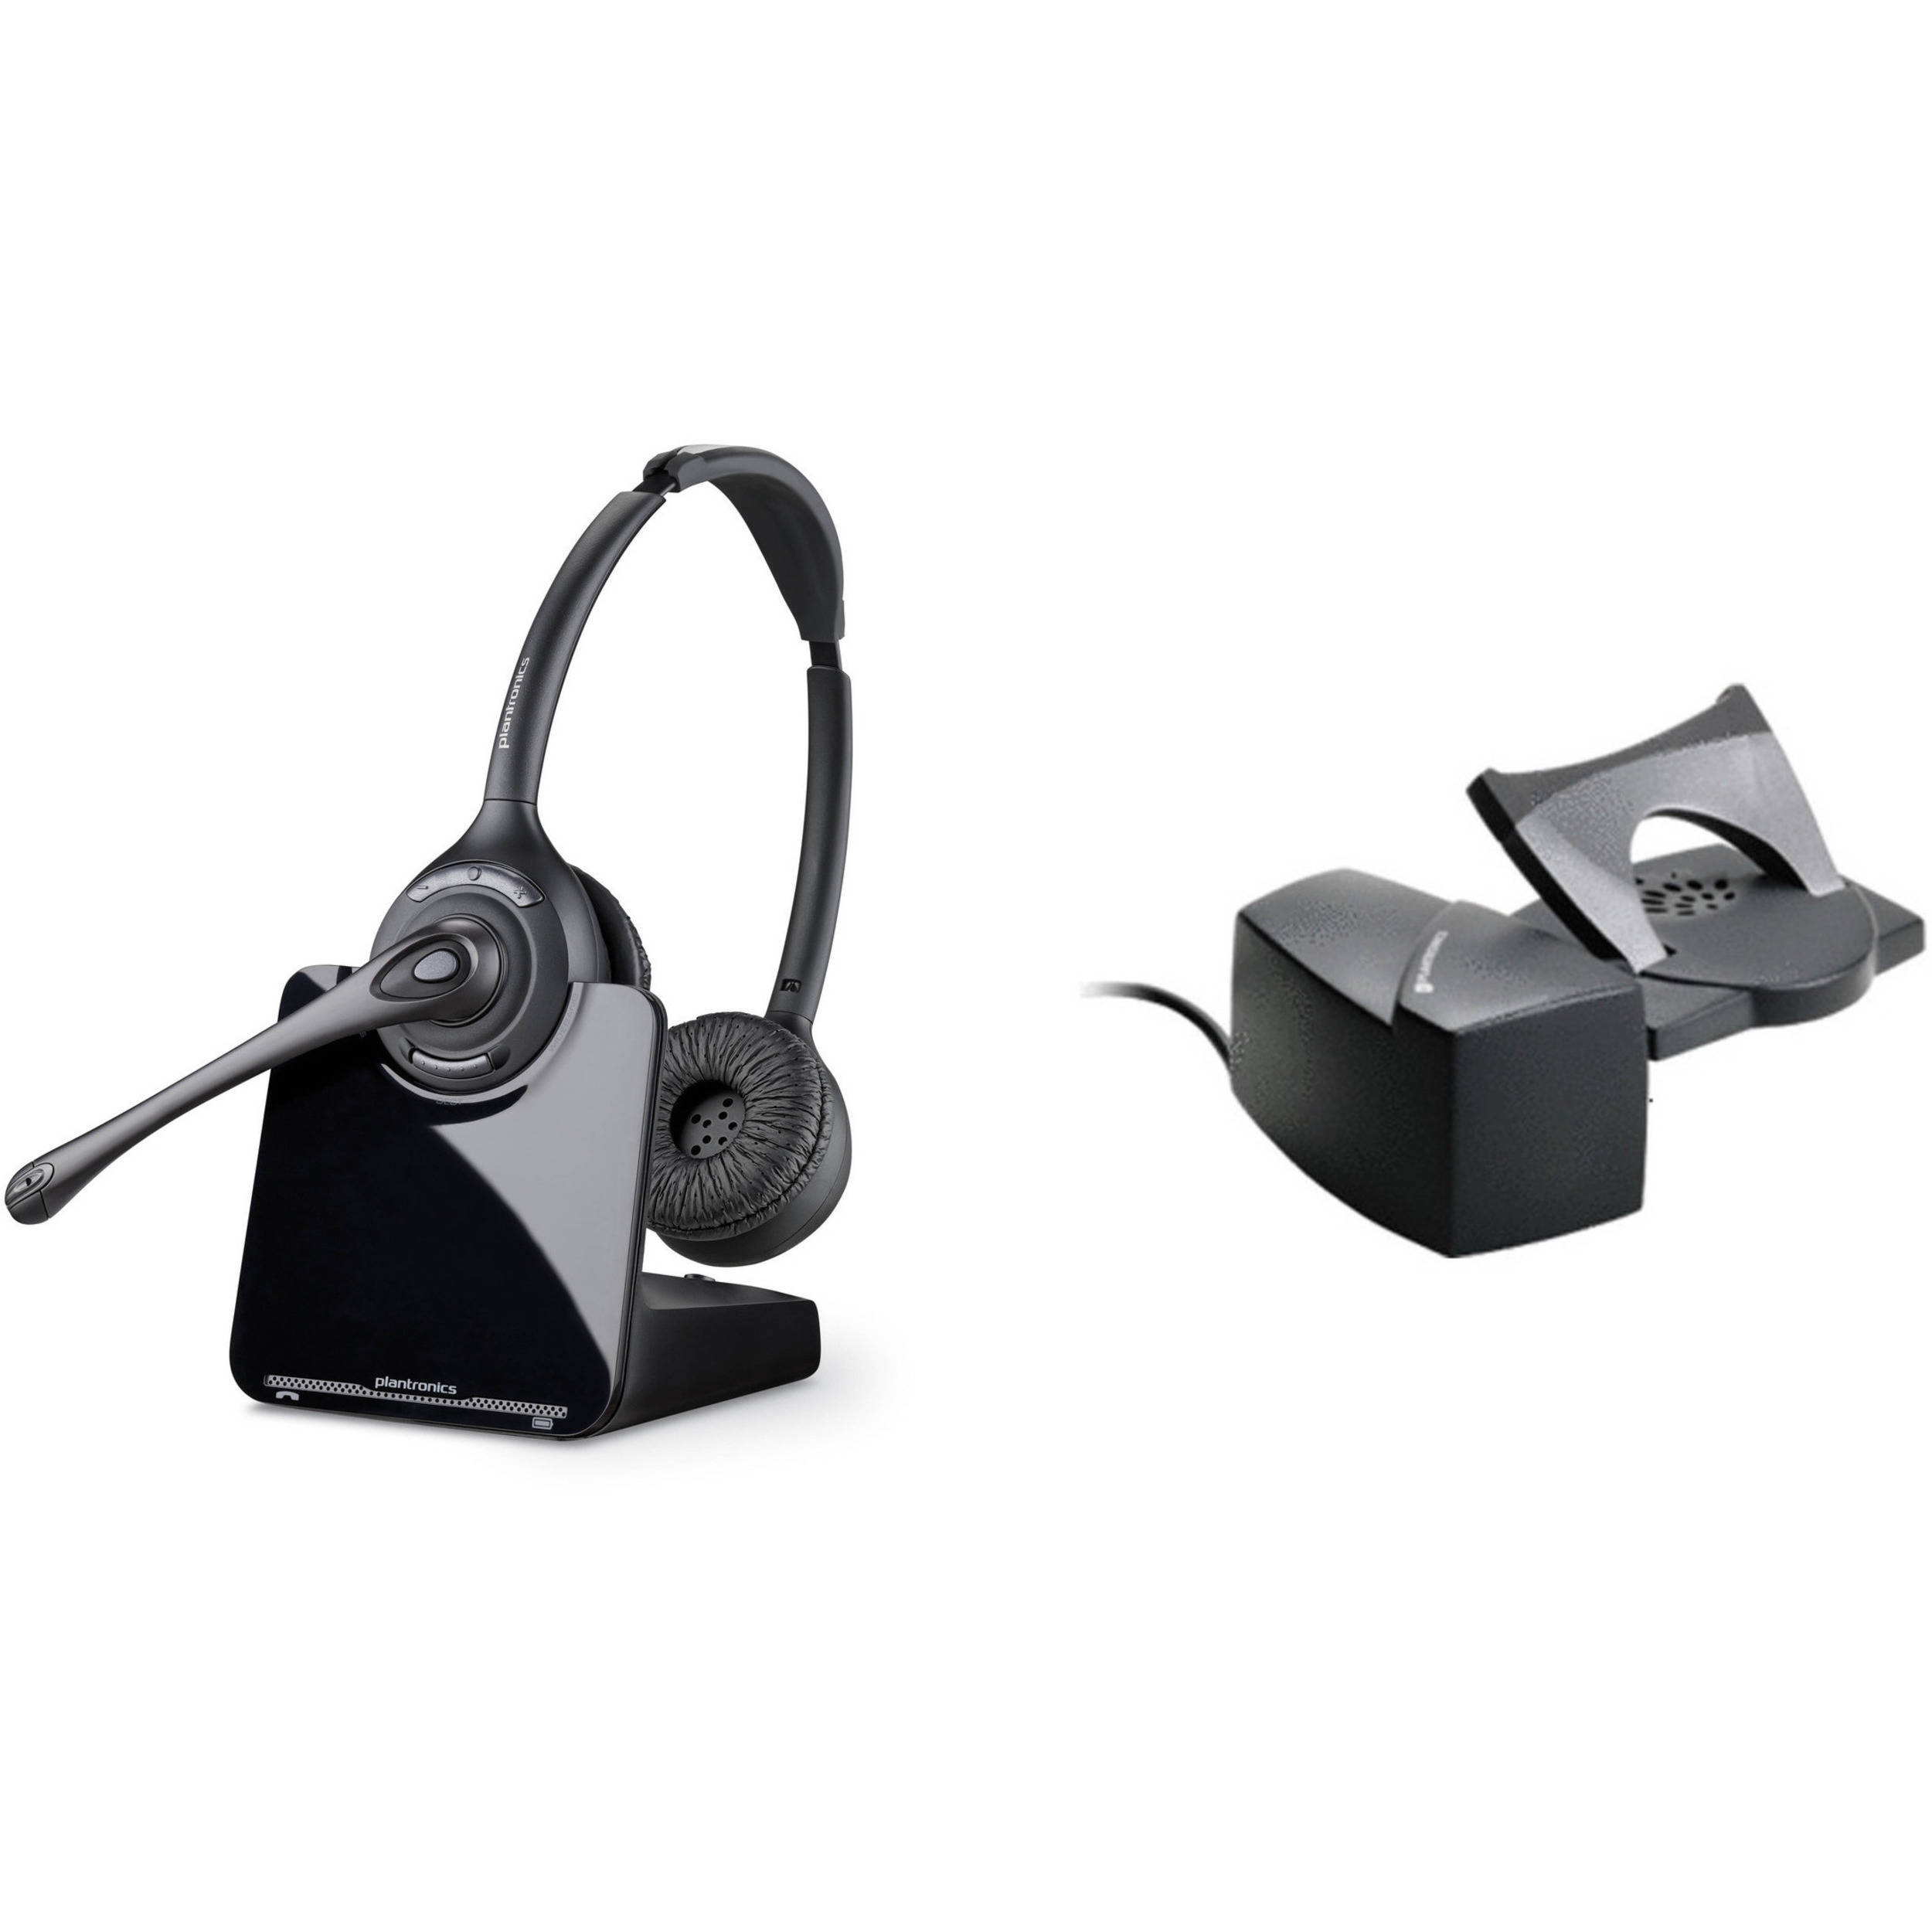 Plantronics Cs520 Wireless Headset System With Hl10